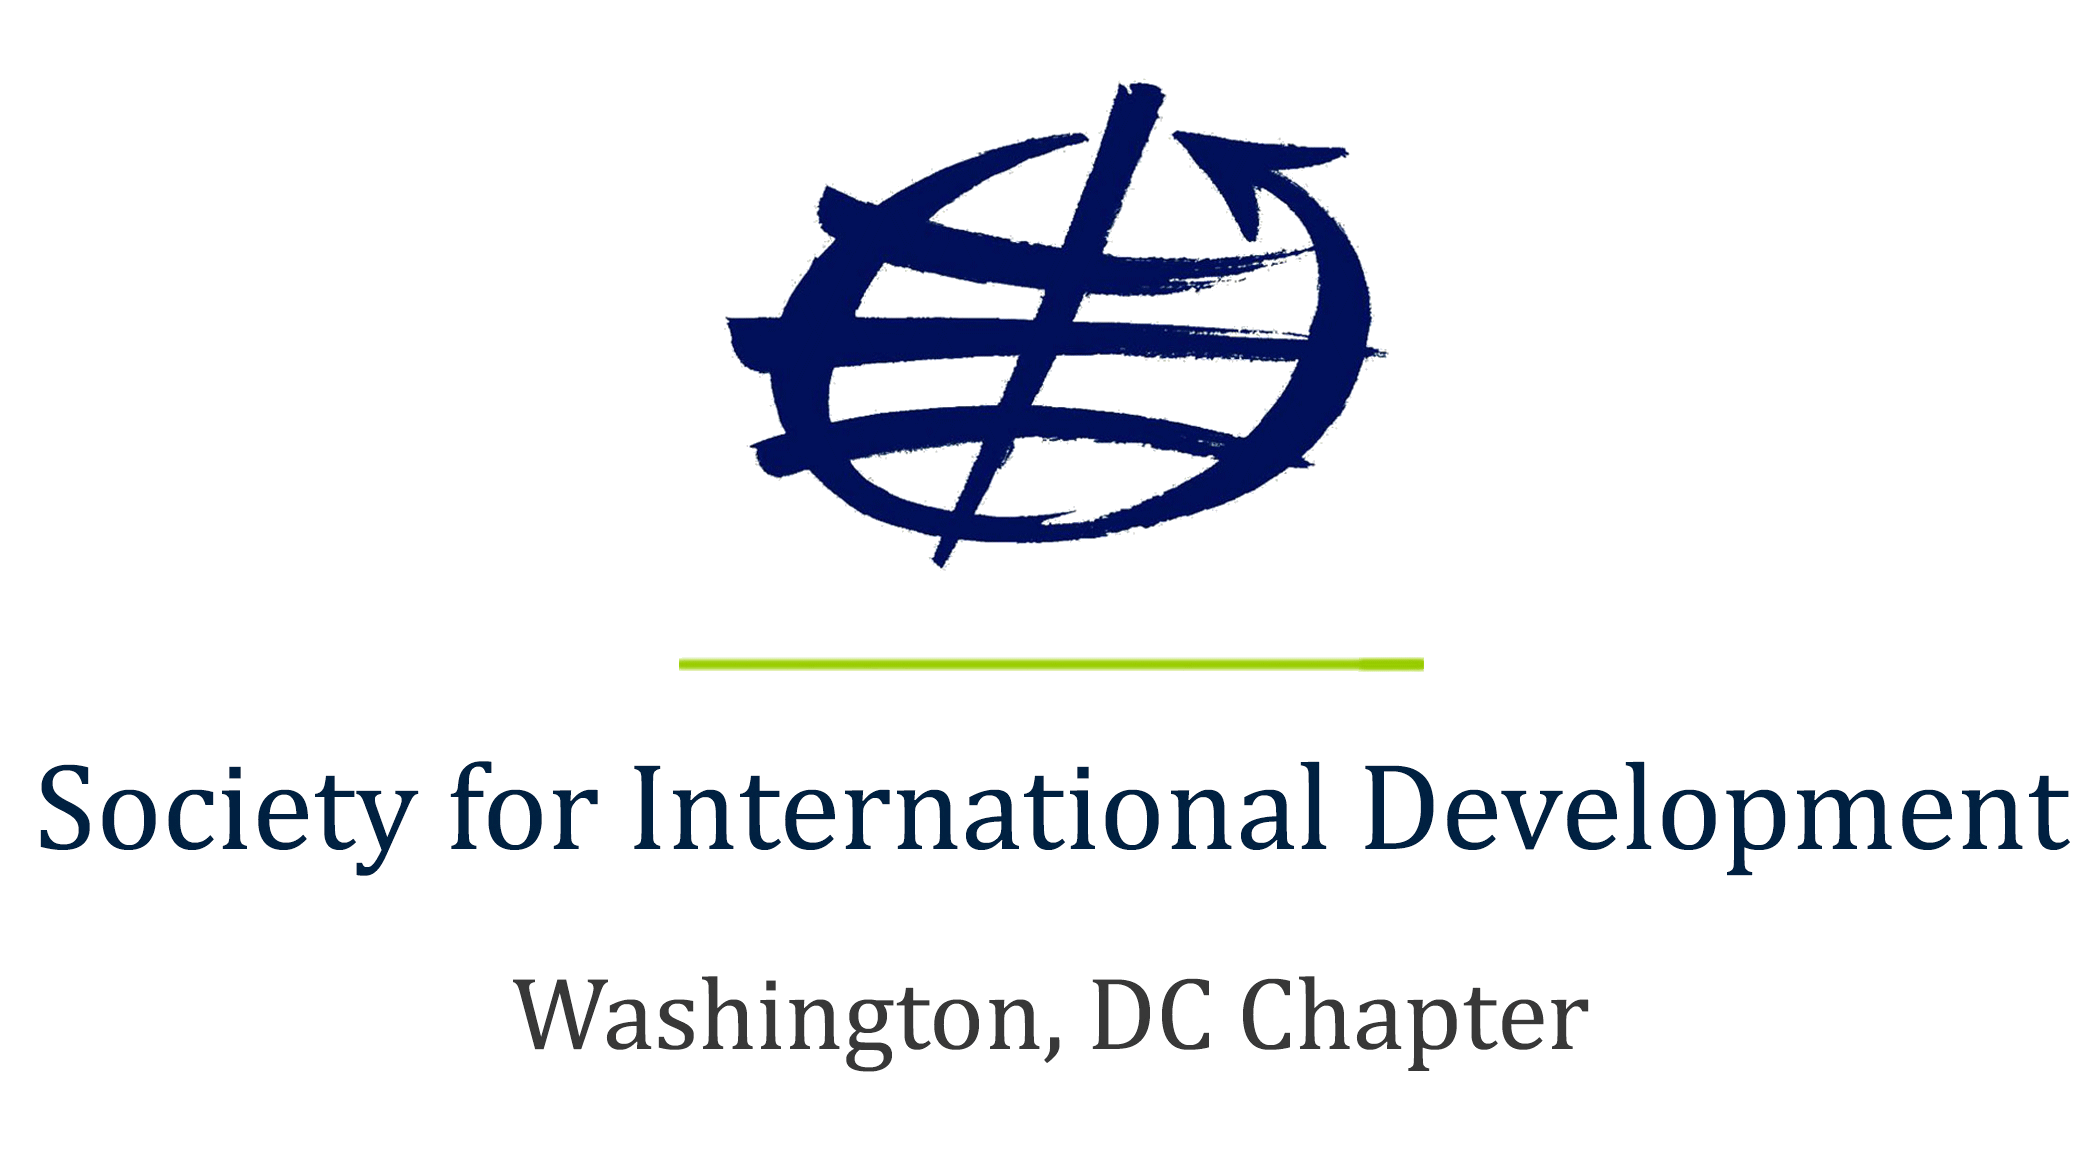 Society for International Development - Washington Chapter